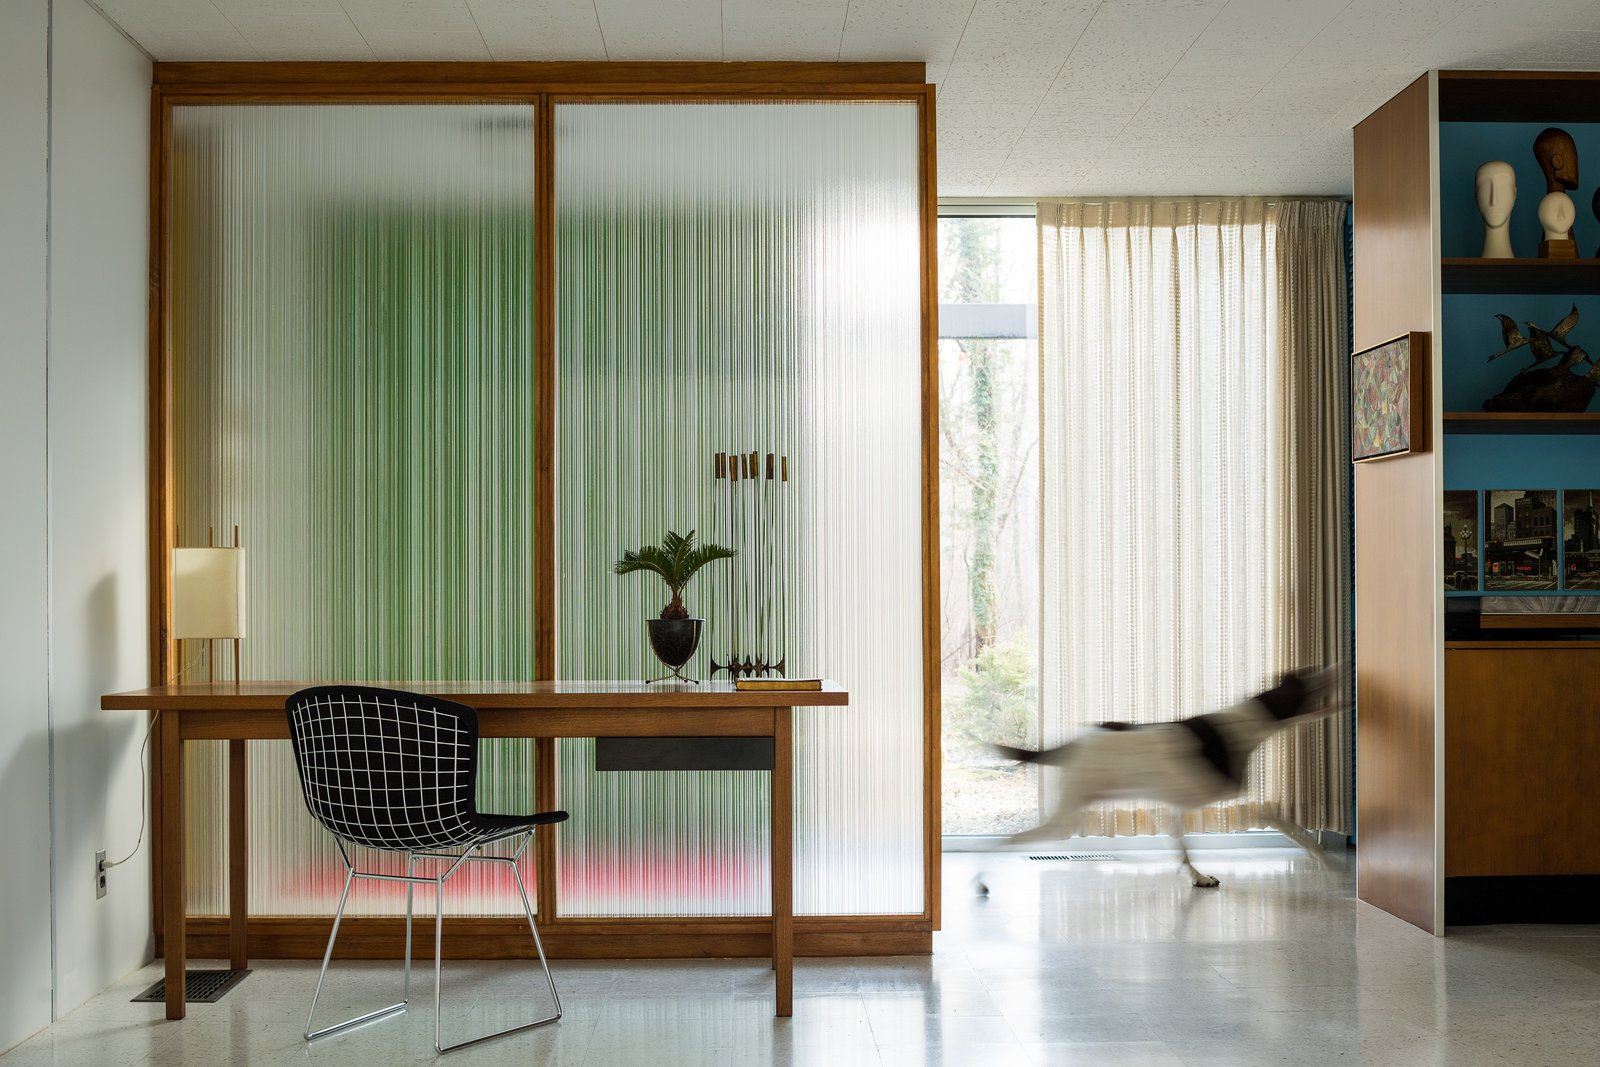 A Paul McCobb reeded glass panel provides a contemplative backdrop for a walnut Knoll writing desk and Bertoia Side Chair. Tagged: Office, Desk, Chair, Lamps, and Terrazzo Floor.  Photo 3 of 14 in A Rare Midcentury Prefab Looks Just Like it Did in 1958—Down to the Knoll and Paul McCobb Interiors